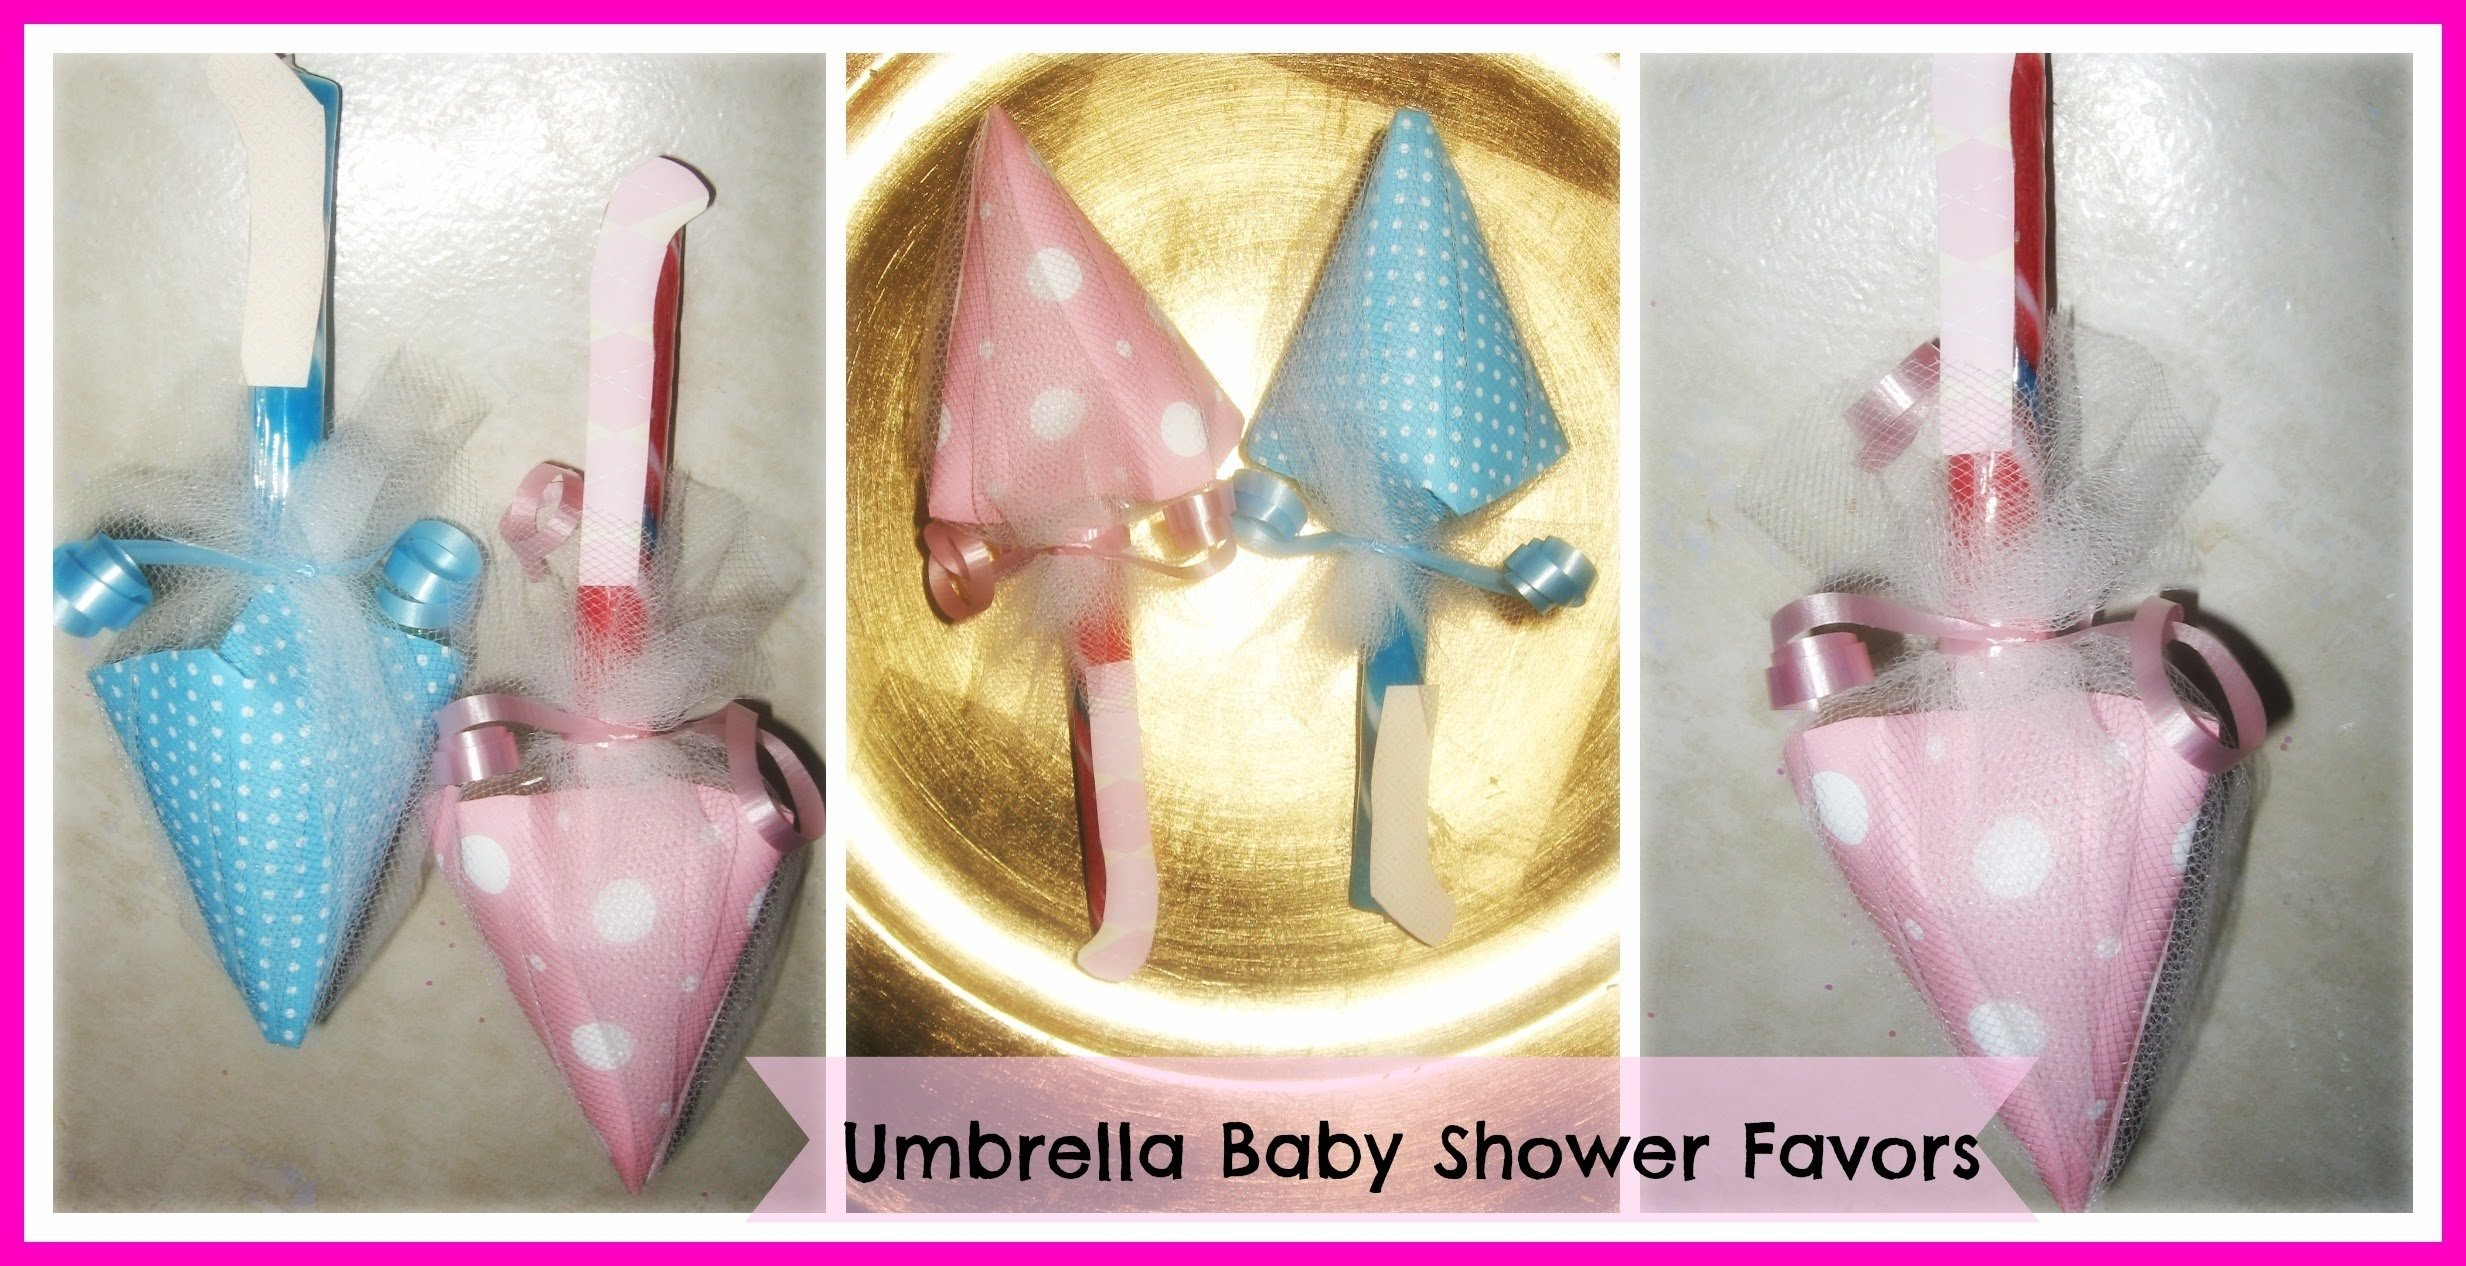 10 Attractive Do It Yourself Baby Shower Favors Ideas how to make umbrella baby shower favors tutorial diy candy umbrella 1 2020